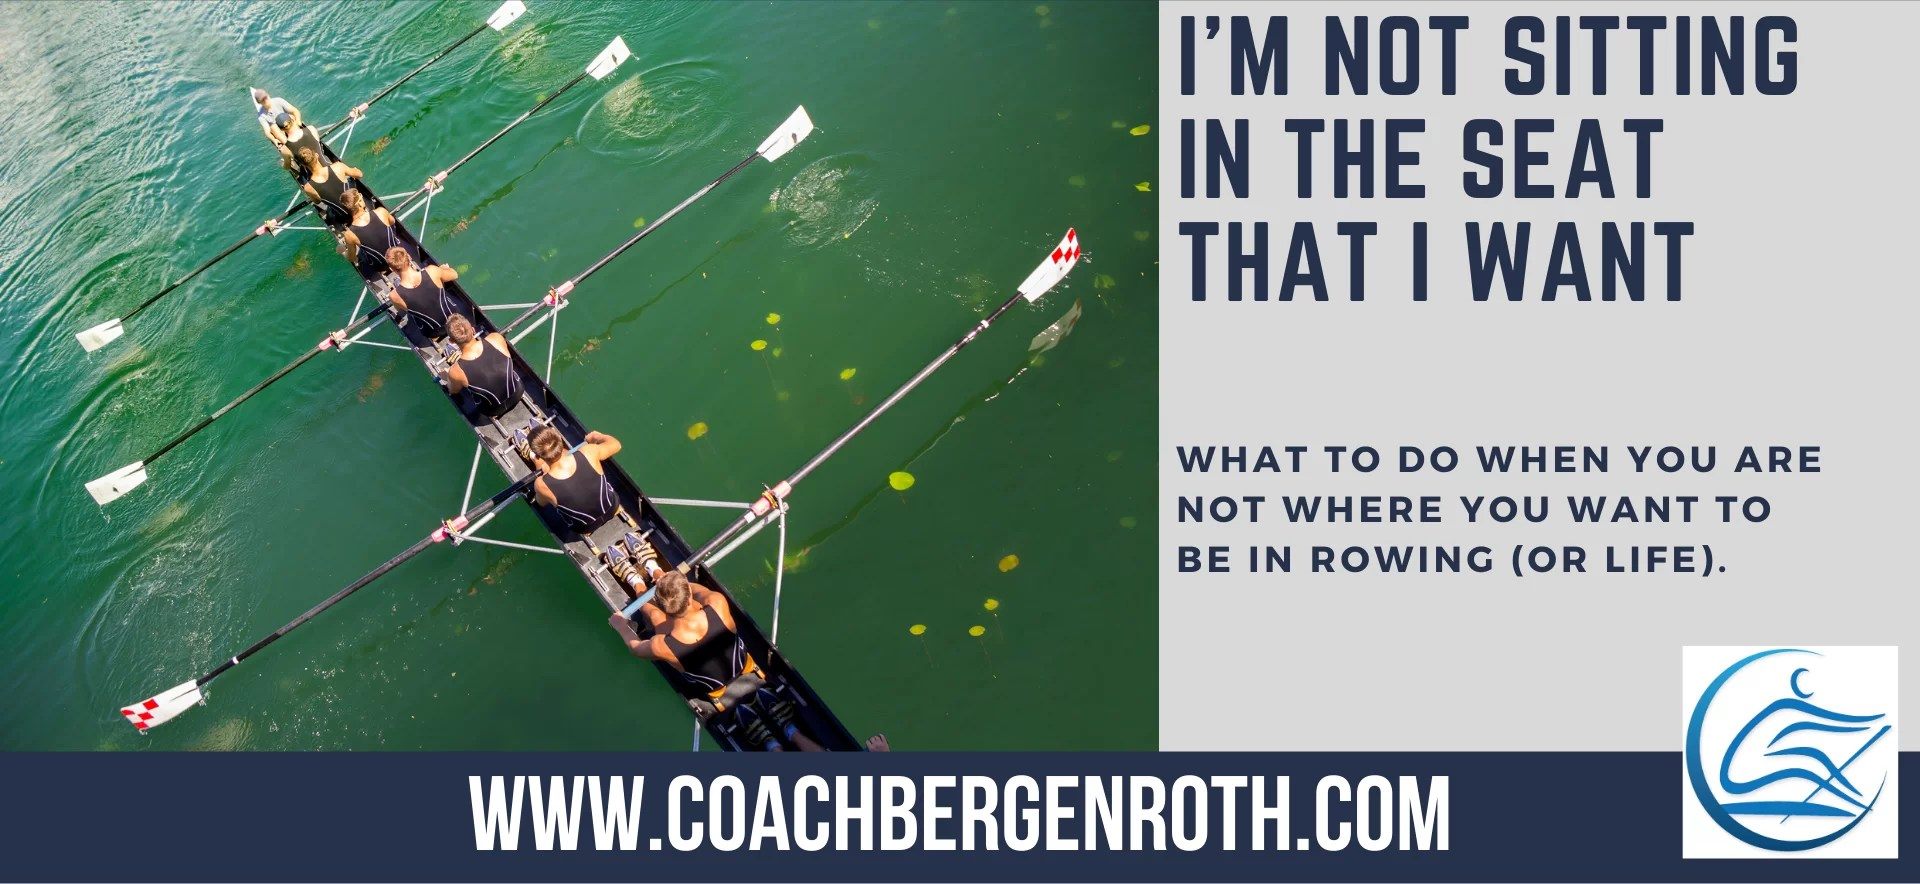 goal setting rowing coach bergenroth indoor rowing coach main page